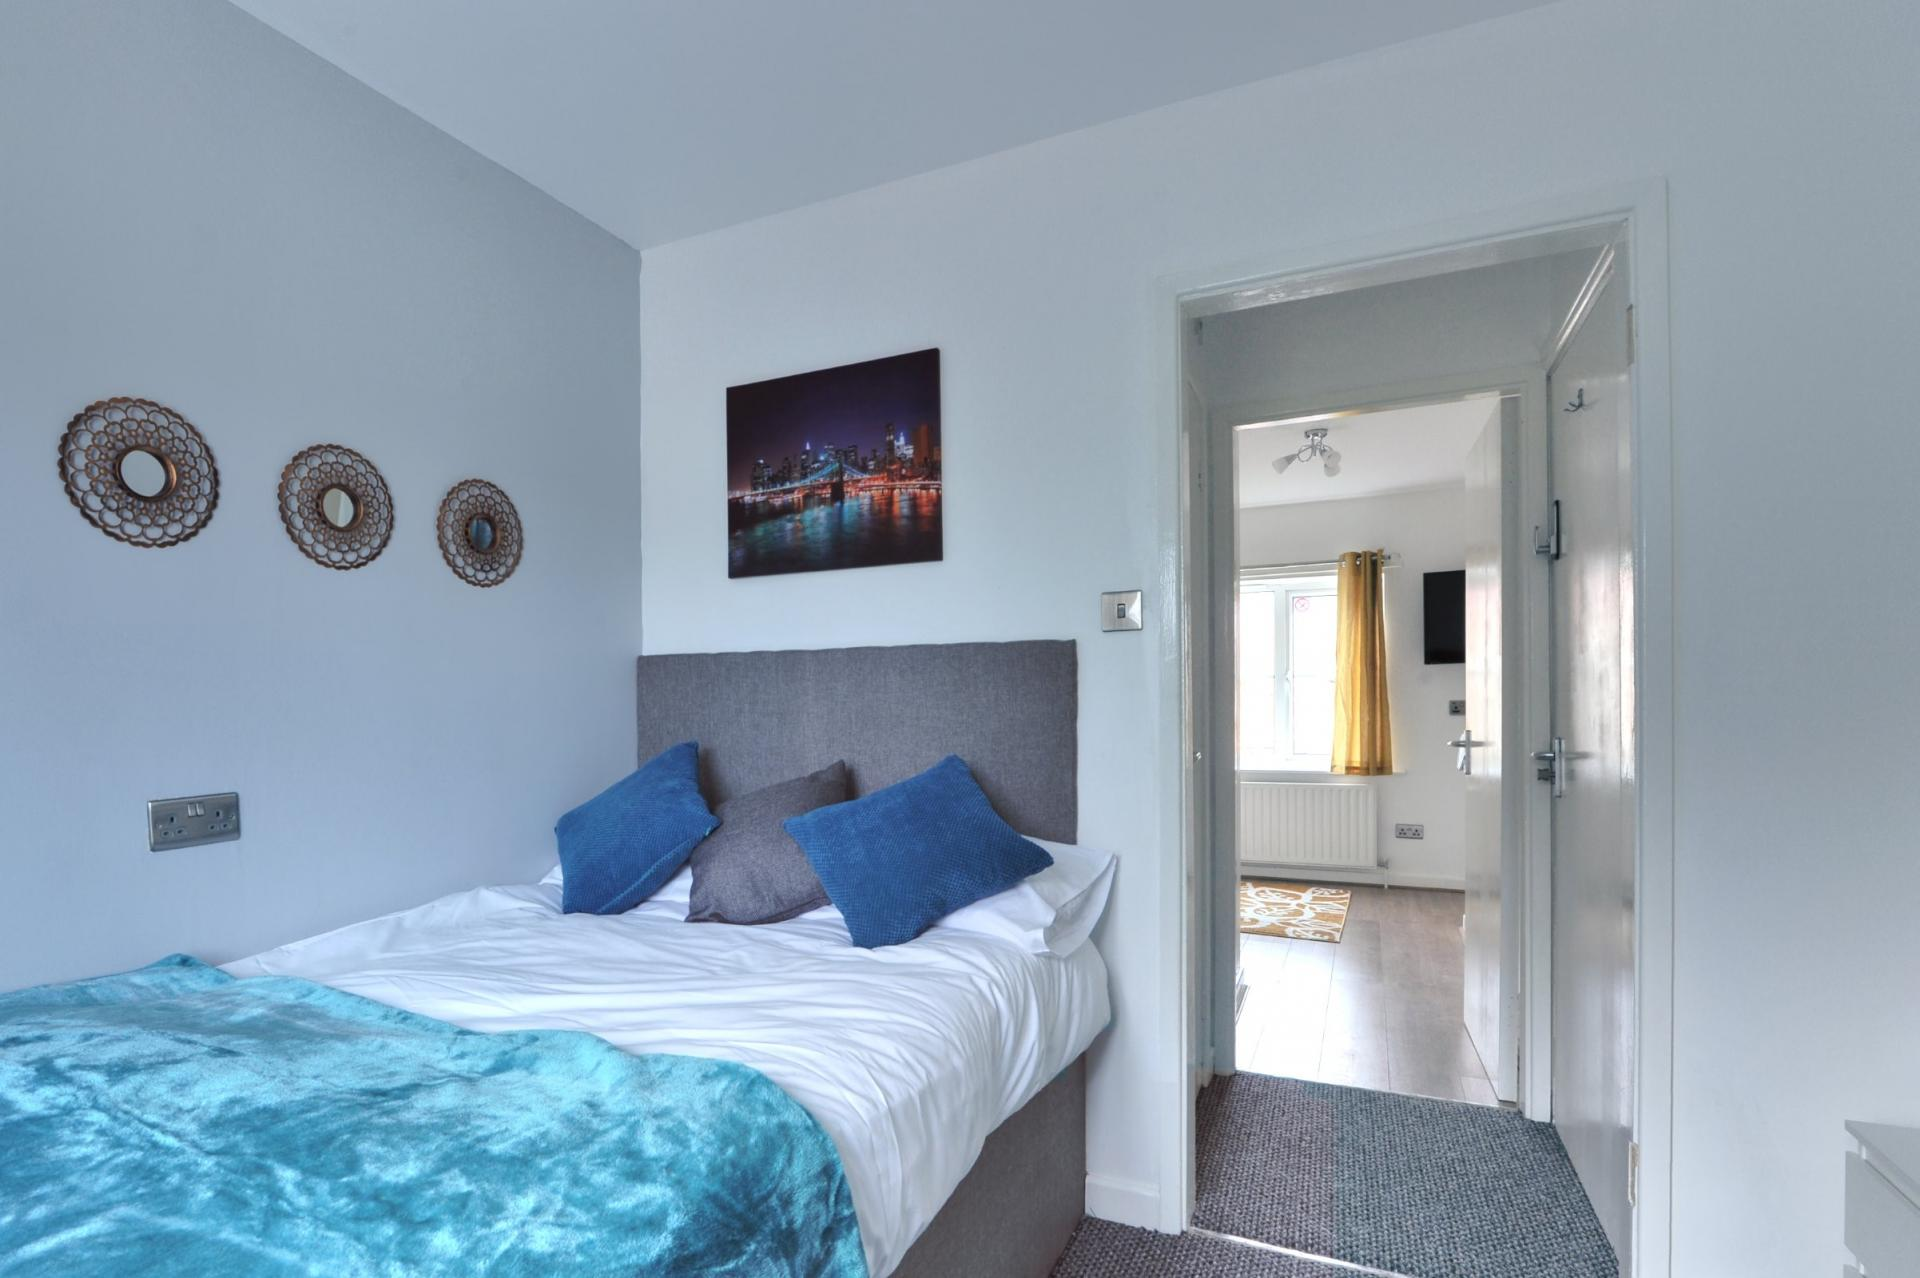 Kayll Suite bedroom at Langton House Apartments